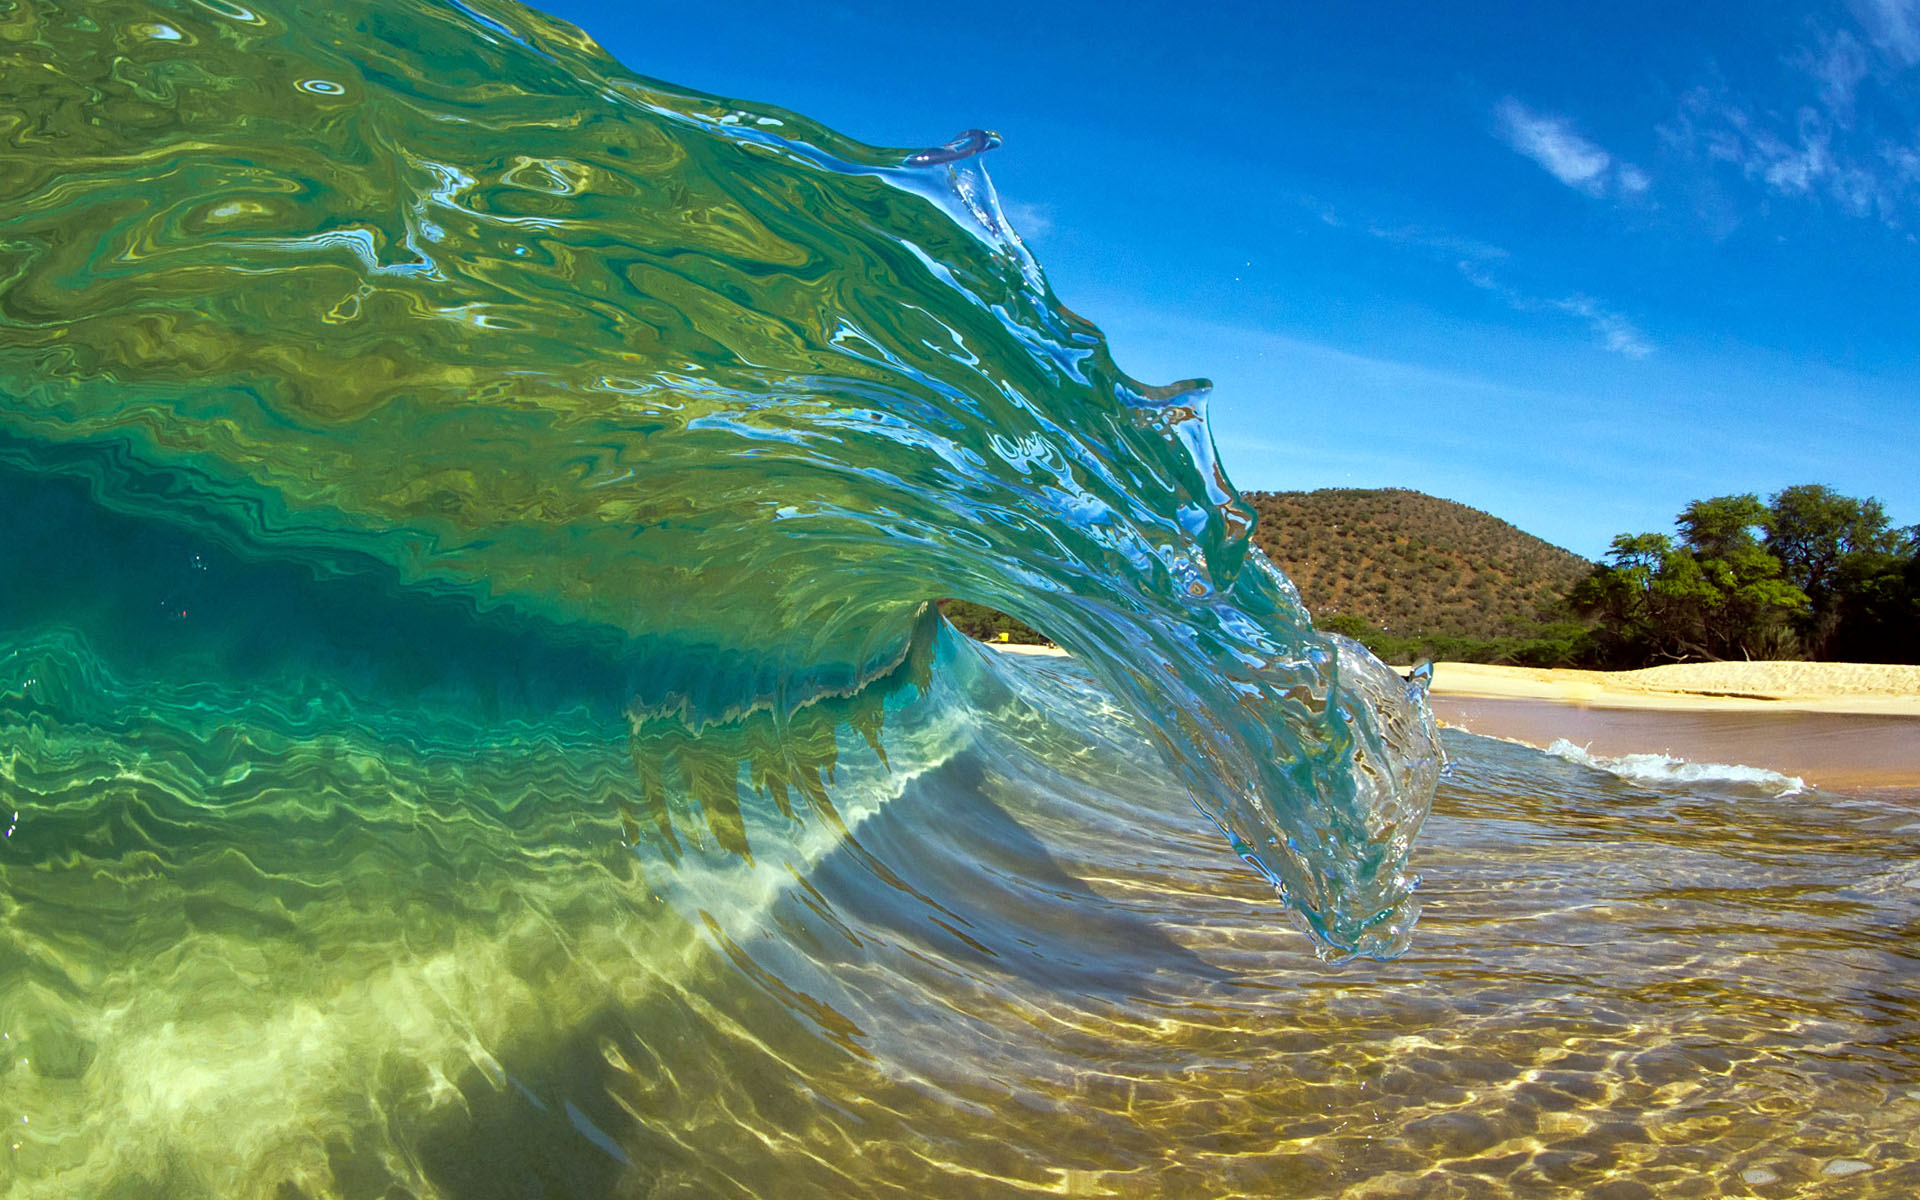 Download awesome water wallpapers gallery - Aquatic wallpaper ...